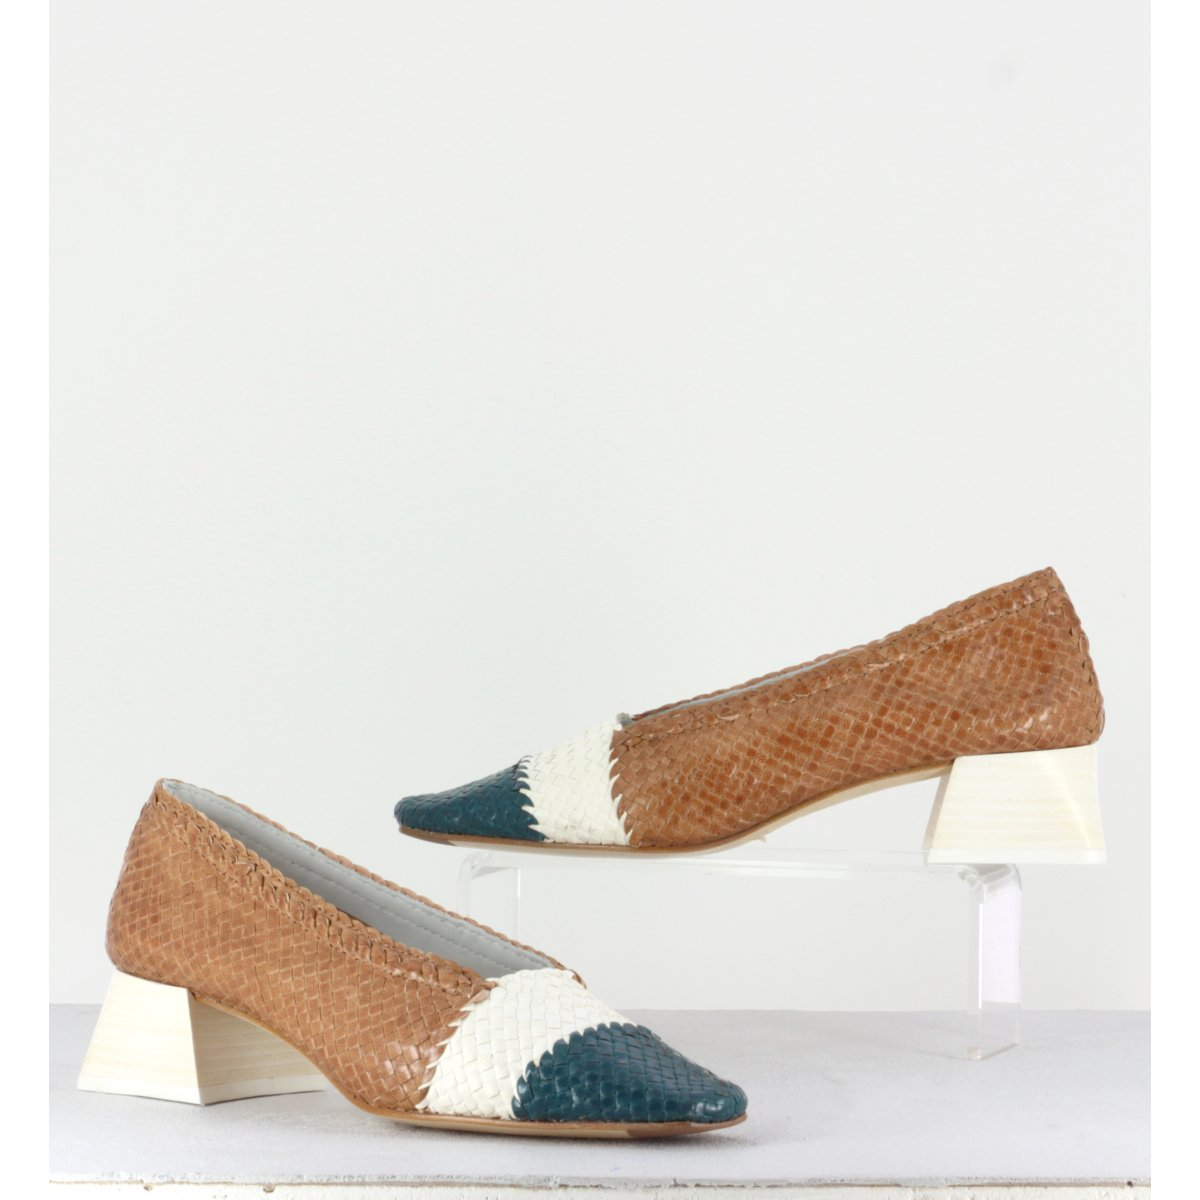 Eivissa Natural Mix Woven Leather Heels